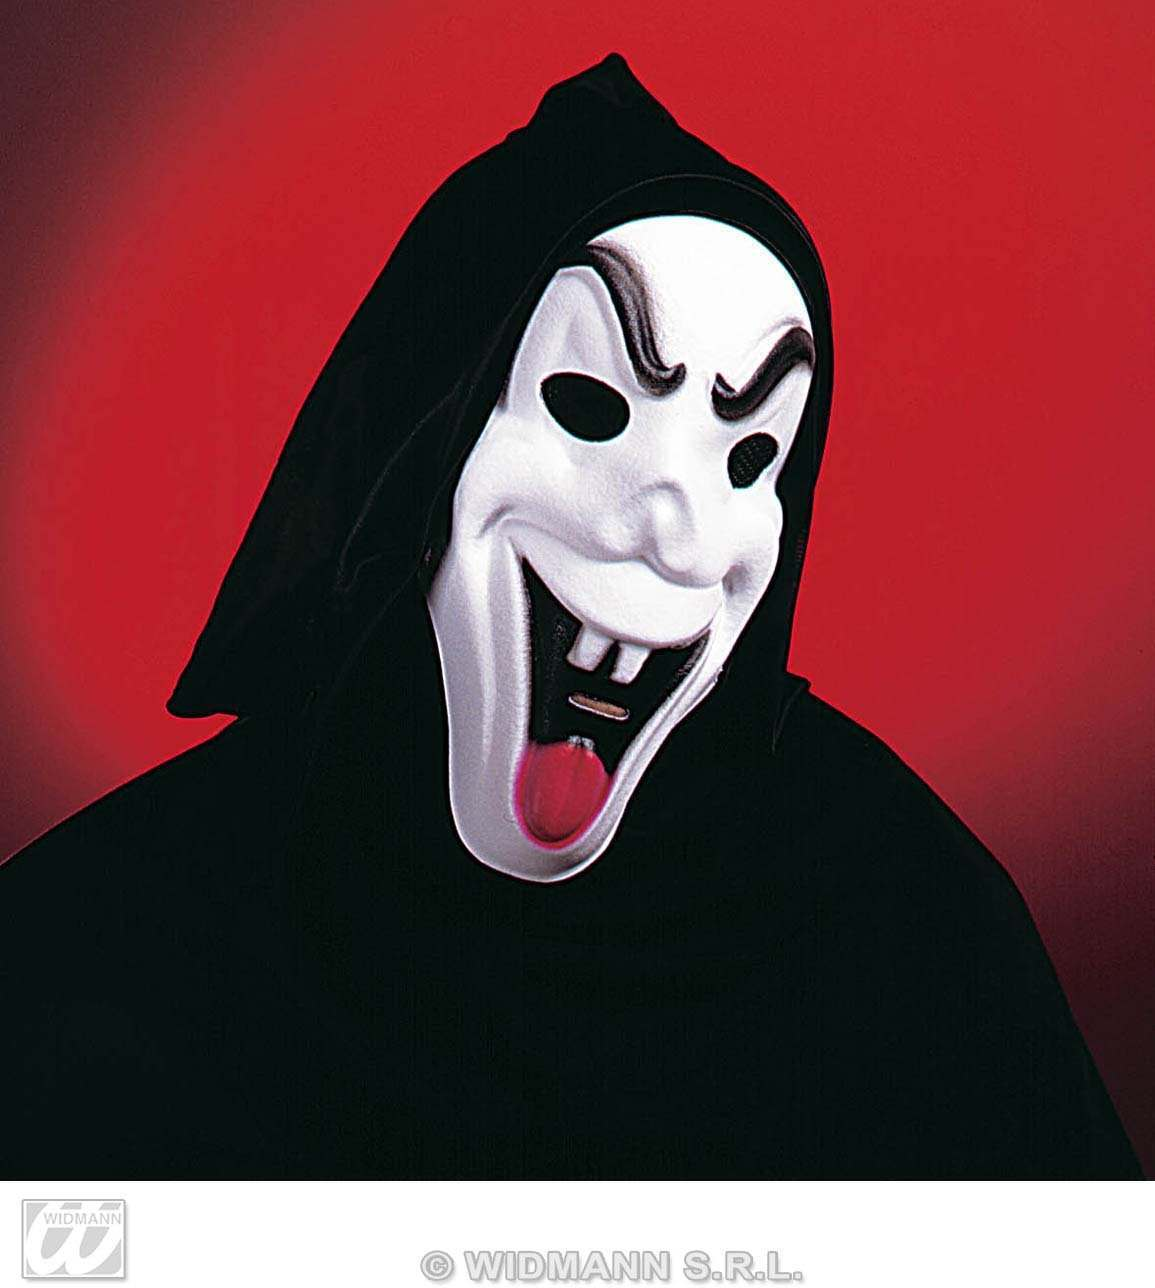 Showing Media & Posts for Funny ghostface mask   www.picofunny.com